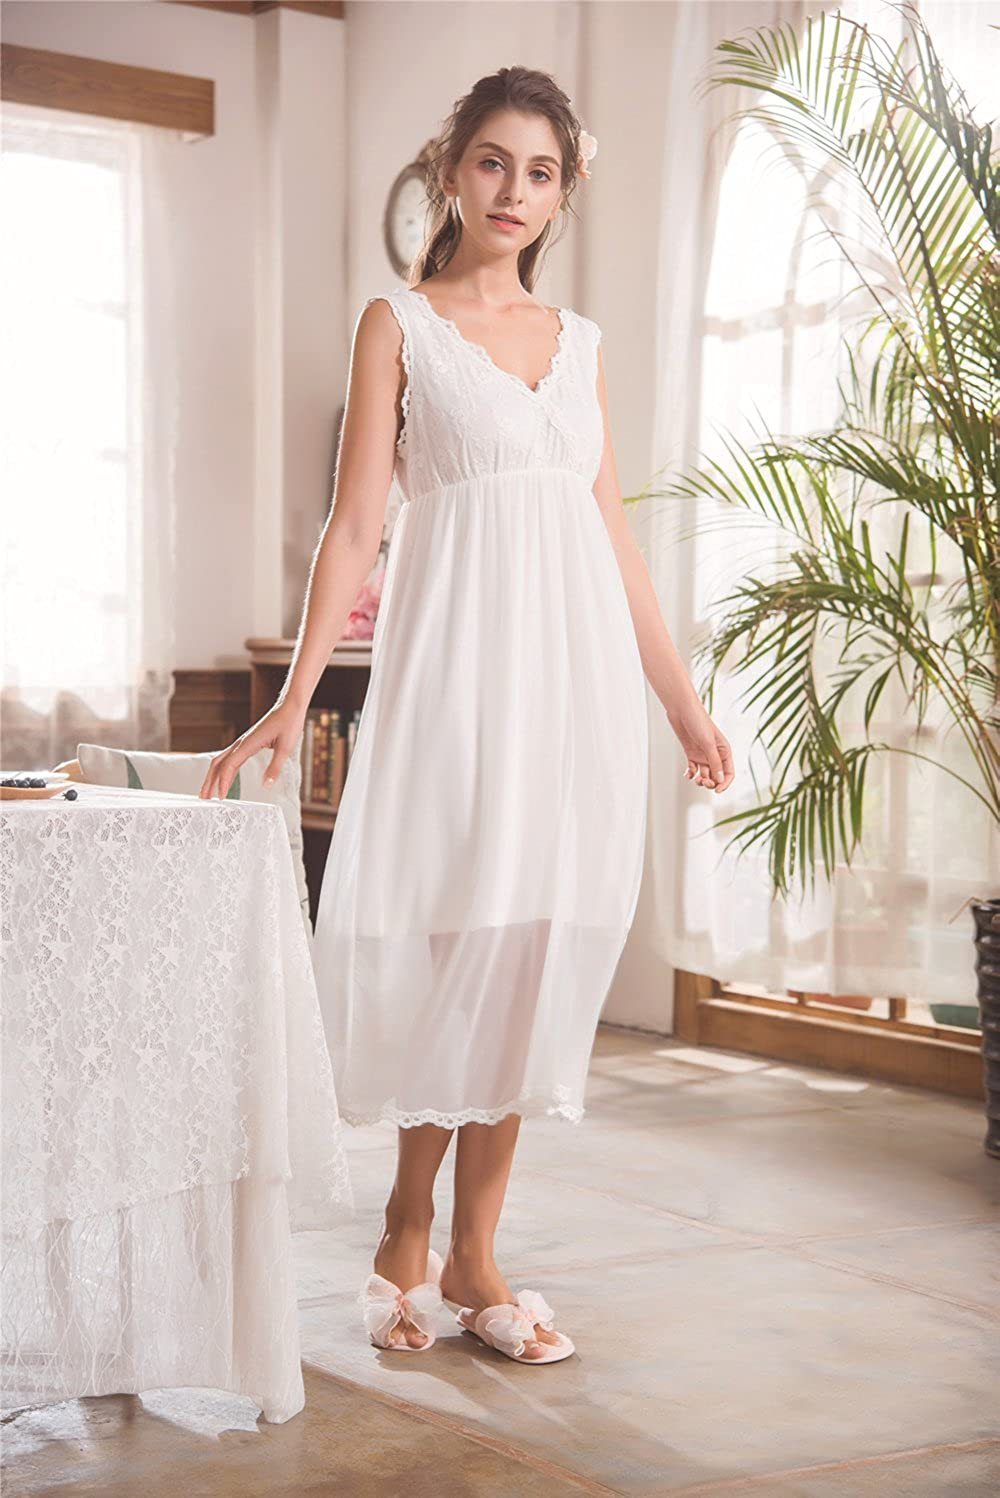 d66a0781ff Flaydigo Women White Nightdress,Ladies Long Cotton Victorian Sleeveless  Nightgown …  Amazon.ca  Clothing   Accessories